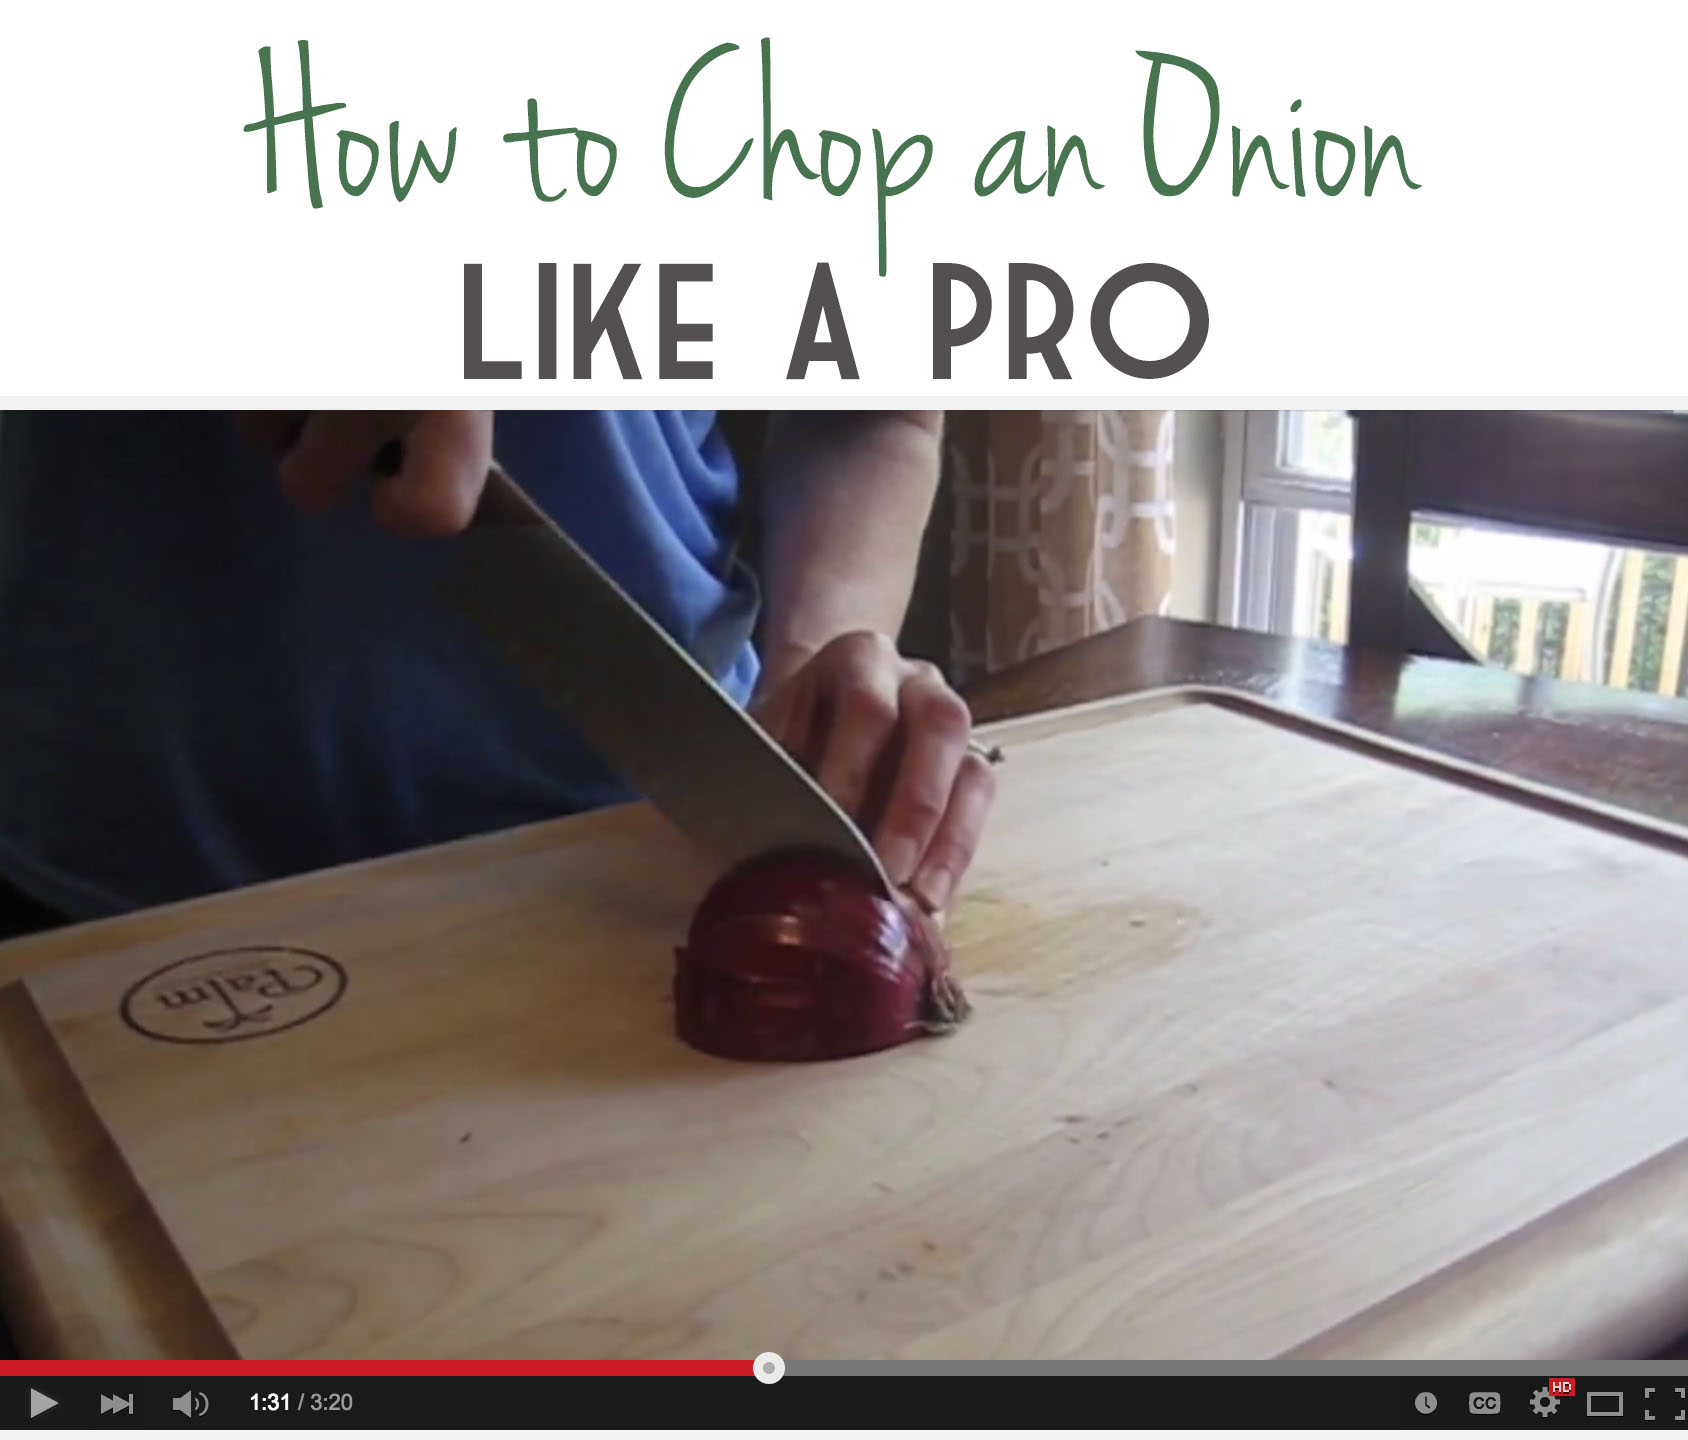 A short video tutorial on the easiest way to chop an onion.